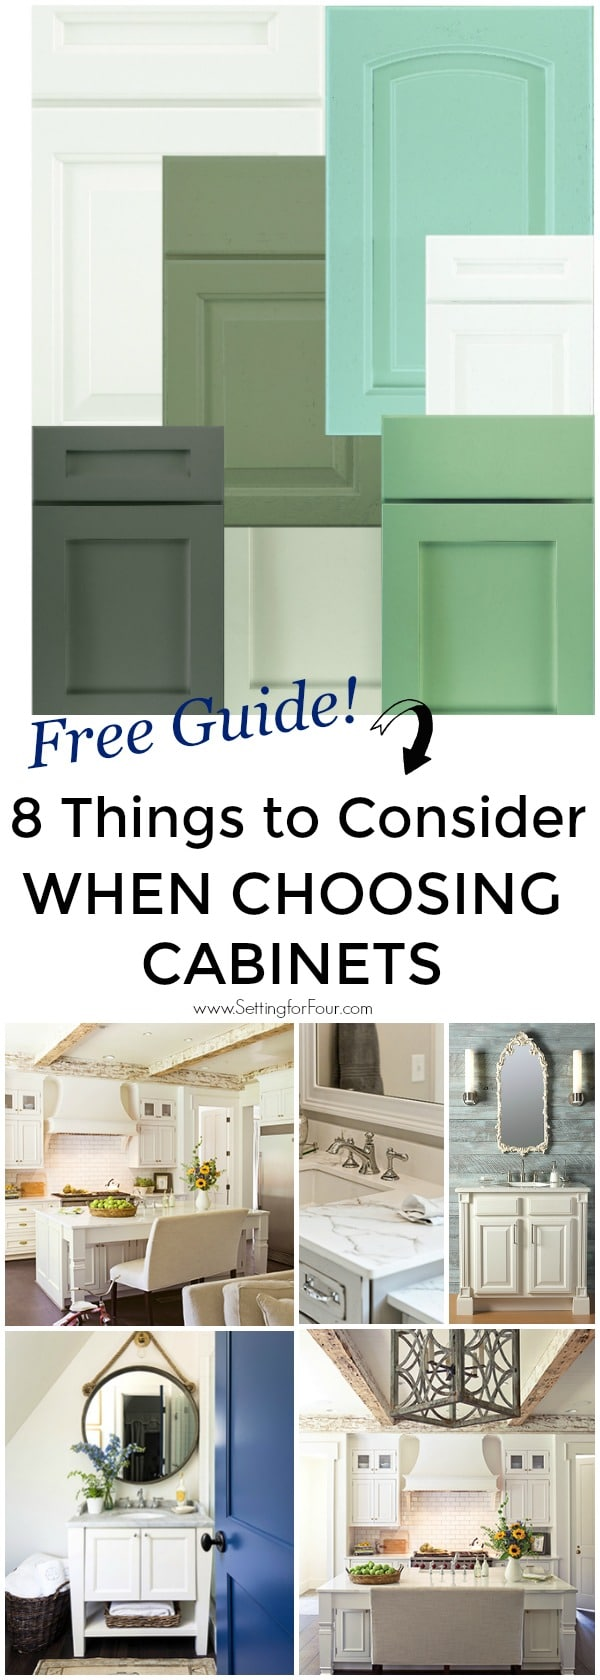 8 IMPORTANT things to Consider when choosing cabinets for Kitchens and Bathrooms. #ad Plus a Free Design Guide! #cabinet #kitchen #bathroom #laundry #guide #free #decor #design #renovation #newhome #homeimprovement #wellborncabinet